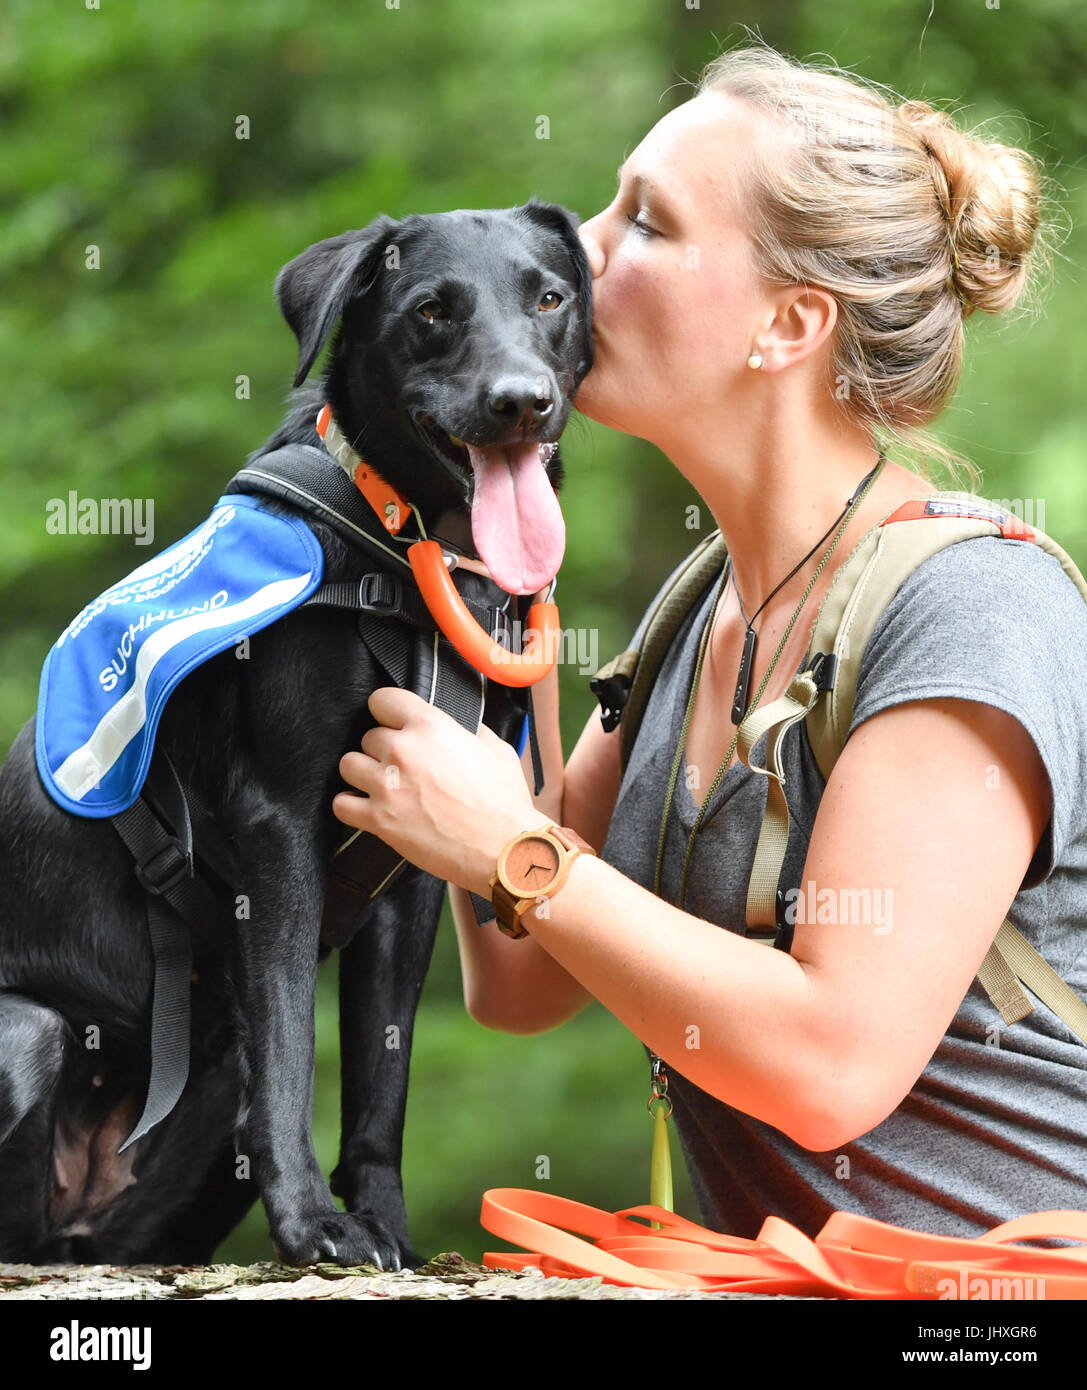 Gelnhausen, Germany. 23rd June, 2017. Labrador 'Maple' cuddling with her trainer Laura Hollerbach, research - Stock Image